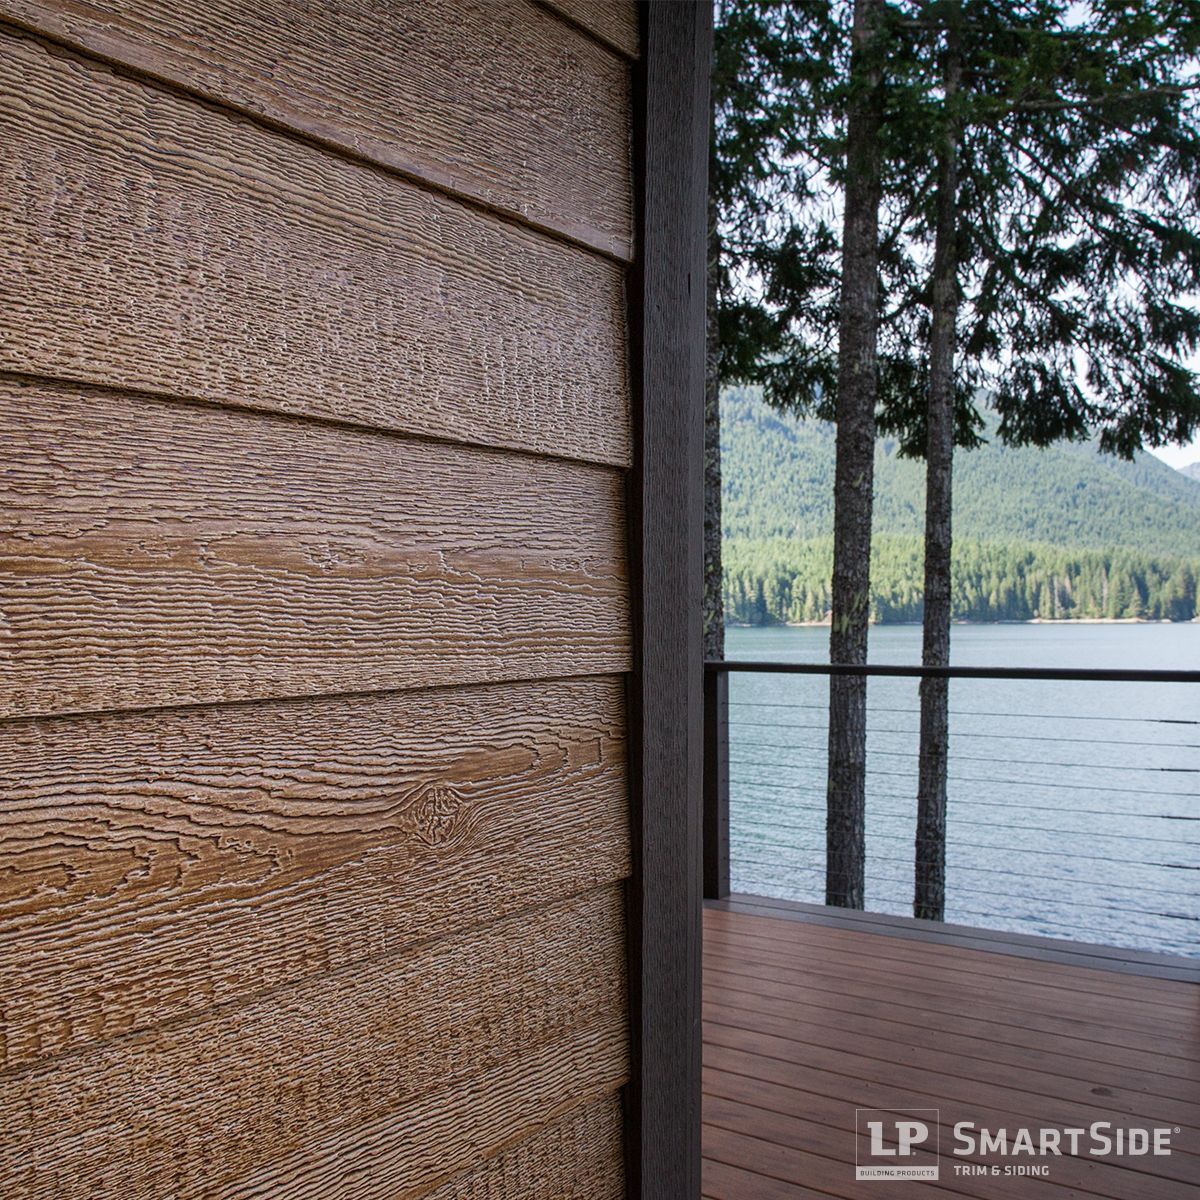 Take a good close look at the rich cedar grain of the lp for Wood siding vs hardiplank